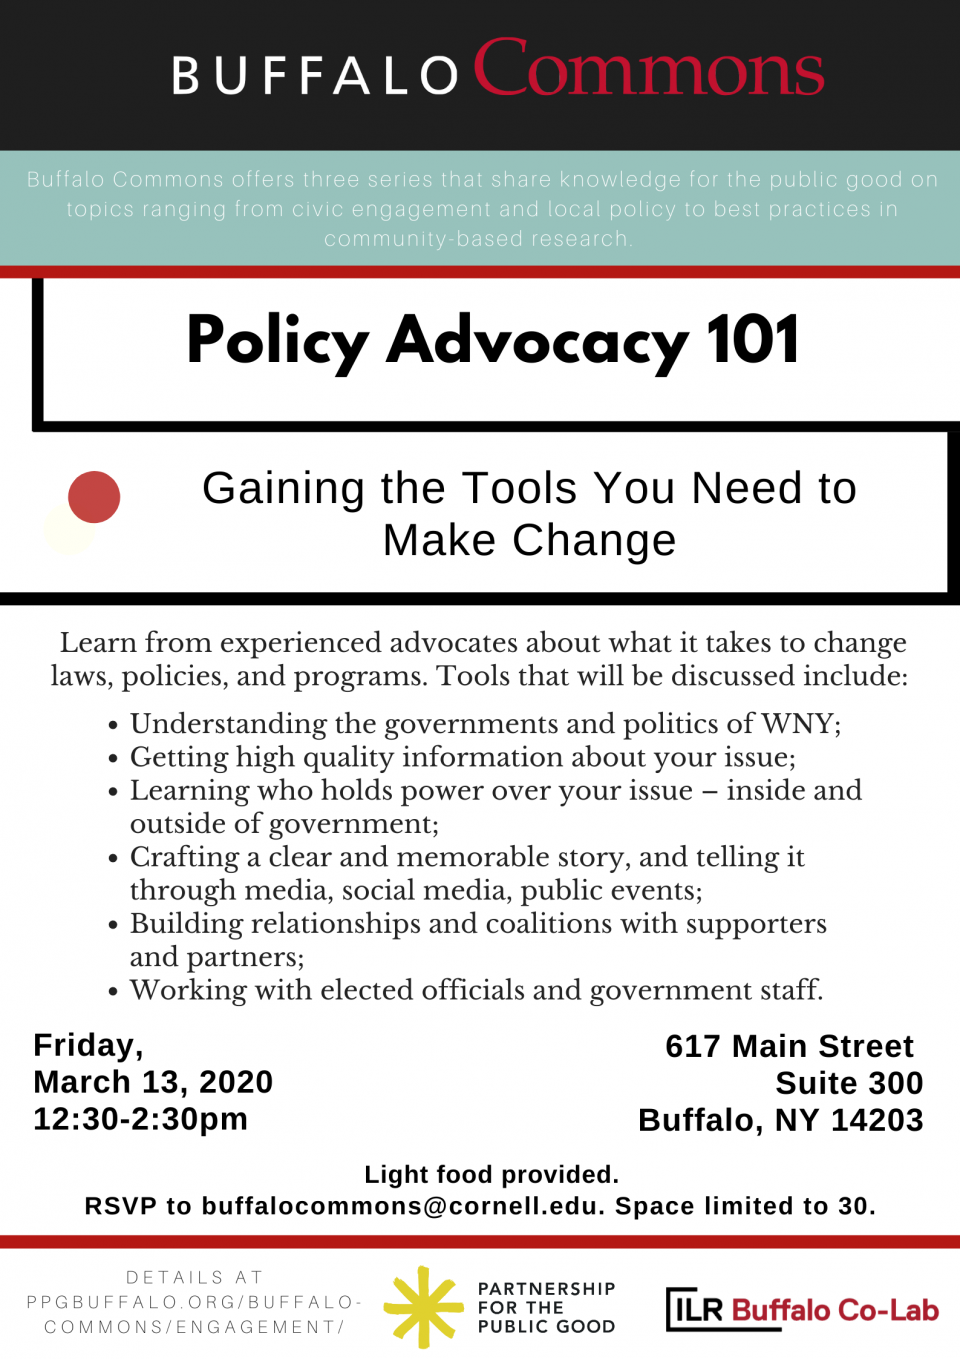 Buffalo Commons Workshop: Policy Advocacy 101